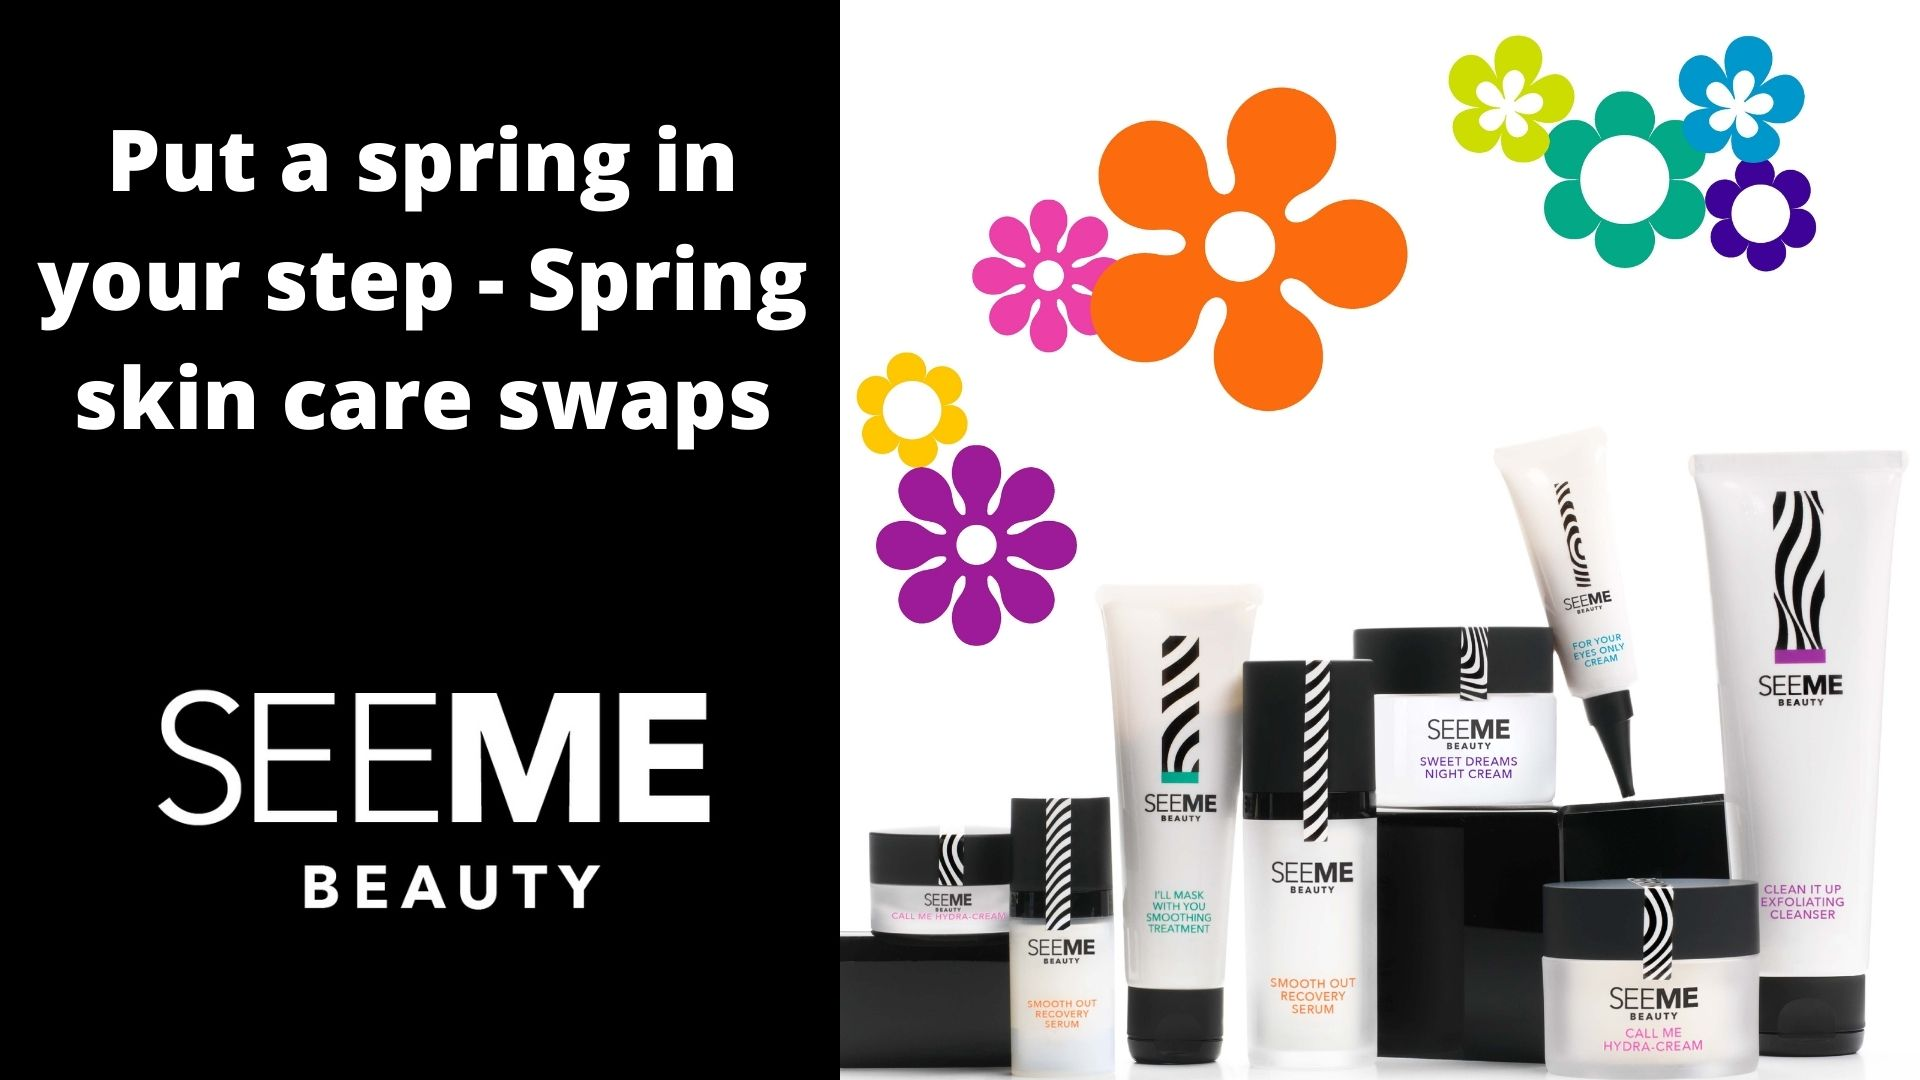 Put a Spring in your step. Spring sin care swaps. SeeMe Beauty line up of products with colorful flowers